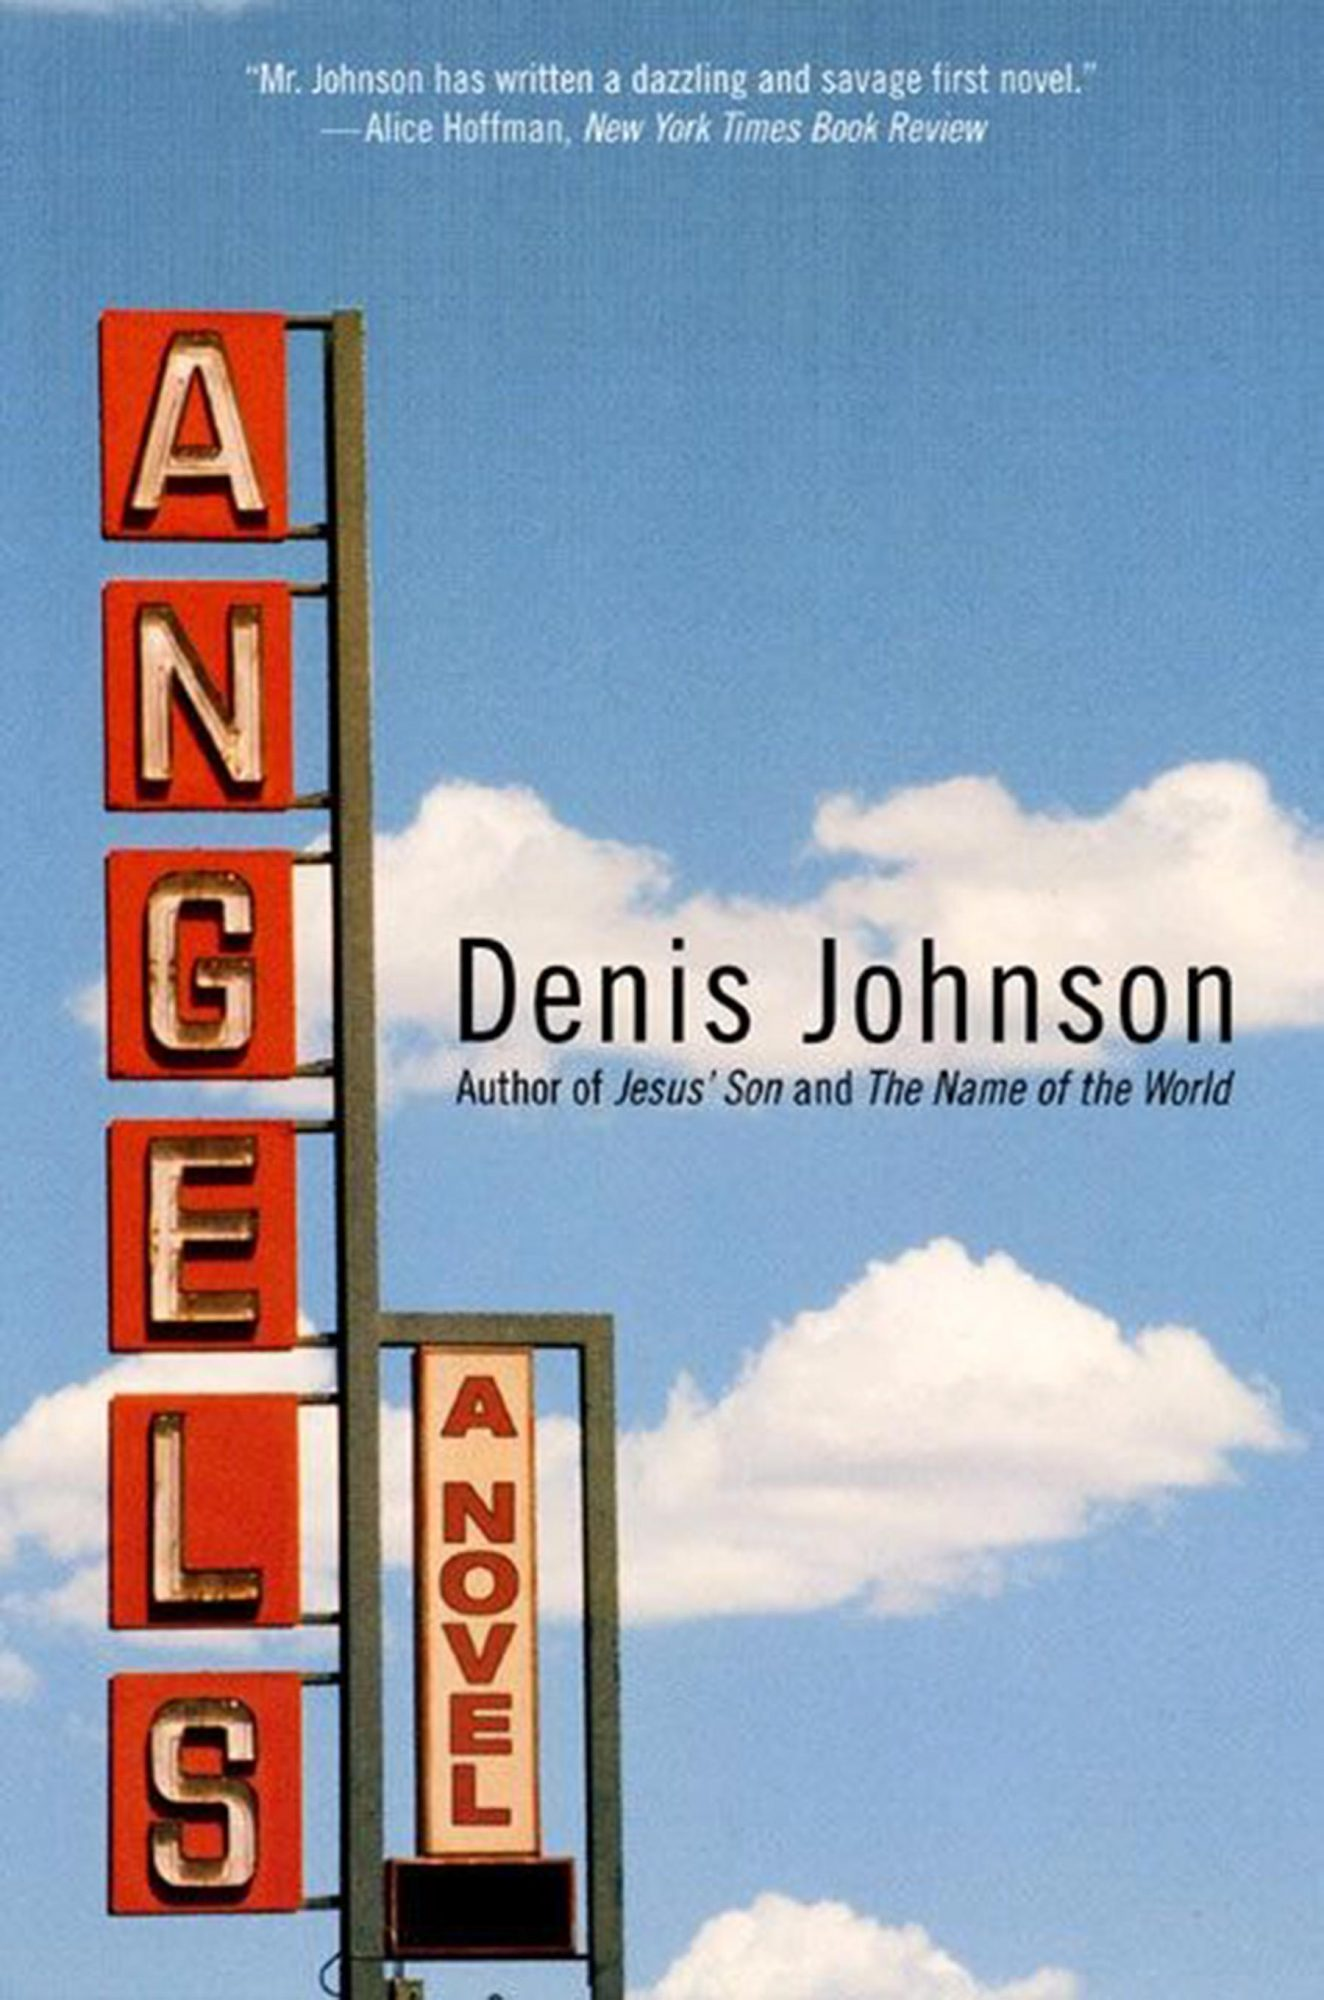 Angels, by Denis Johnson